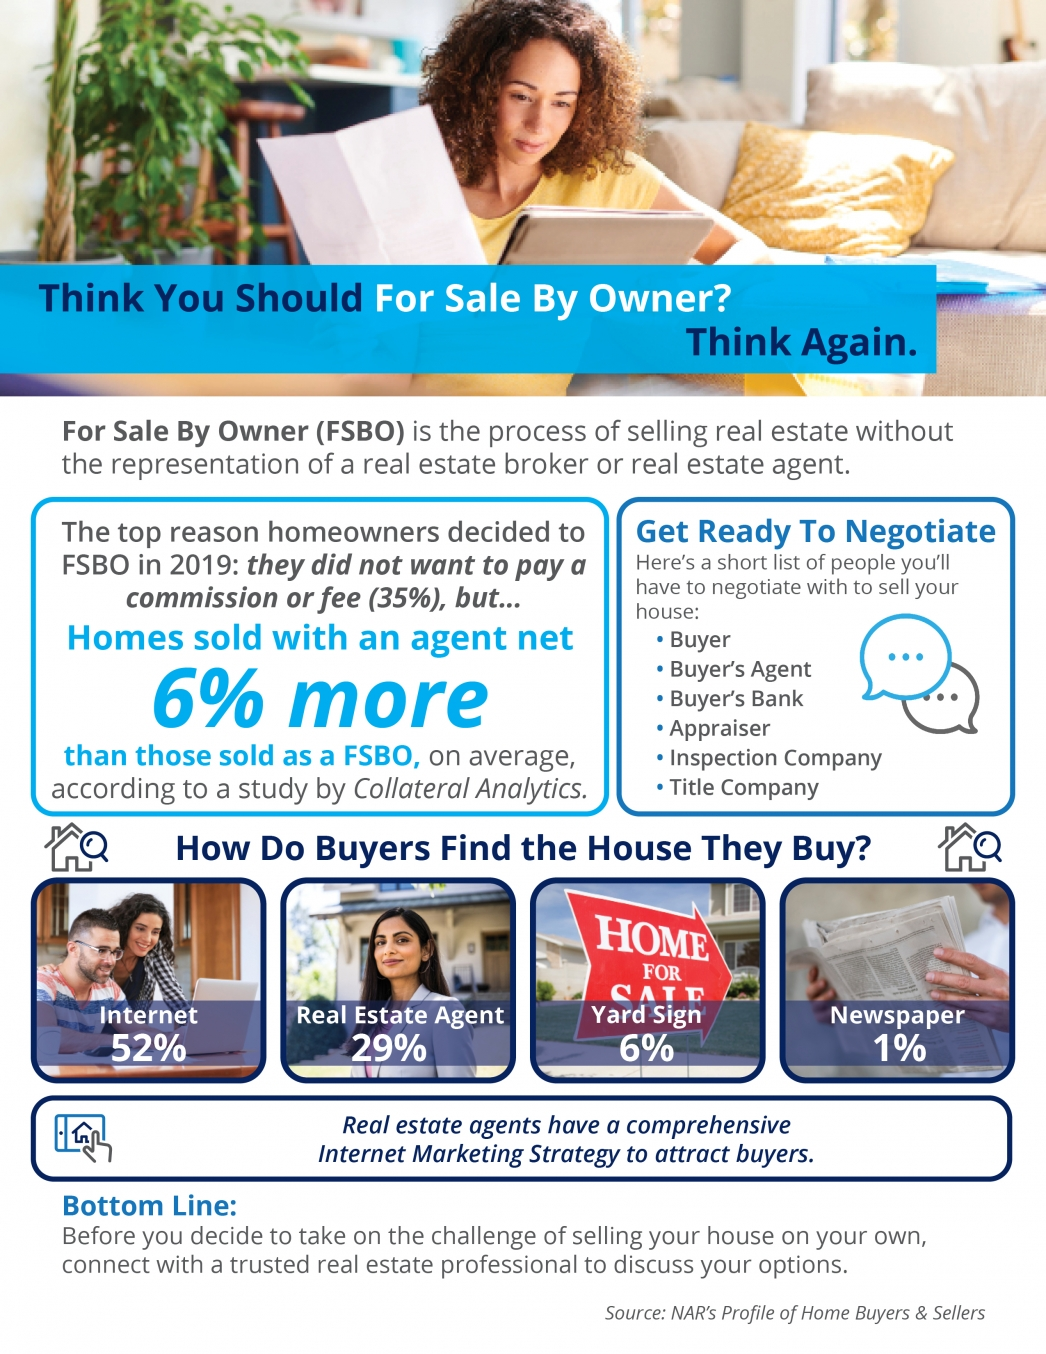 Think You Should For Sale By Owner? Think Again [INFOGRAPHIC]   MyKCM